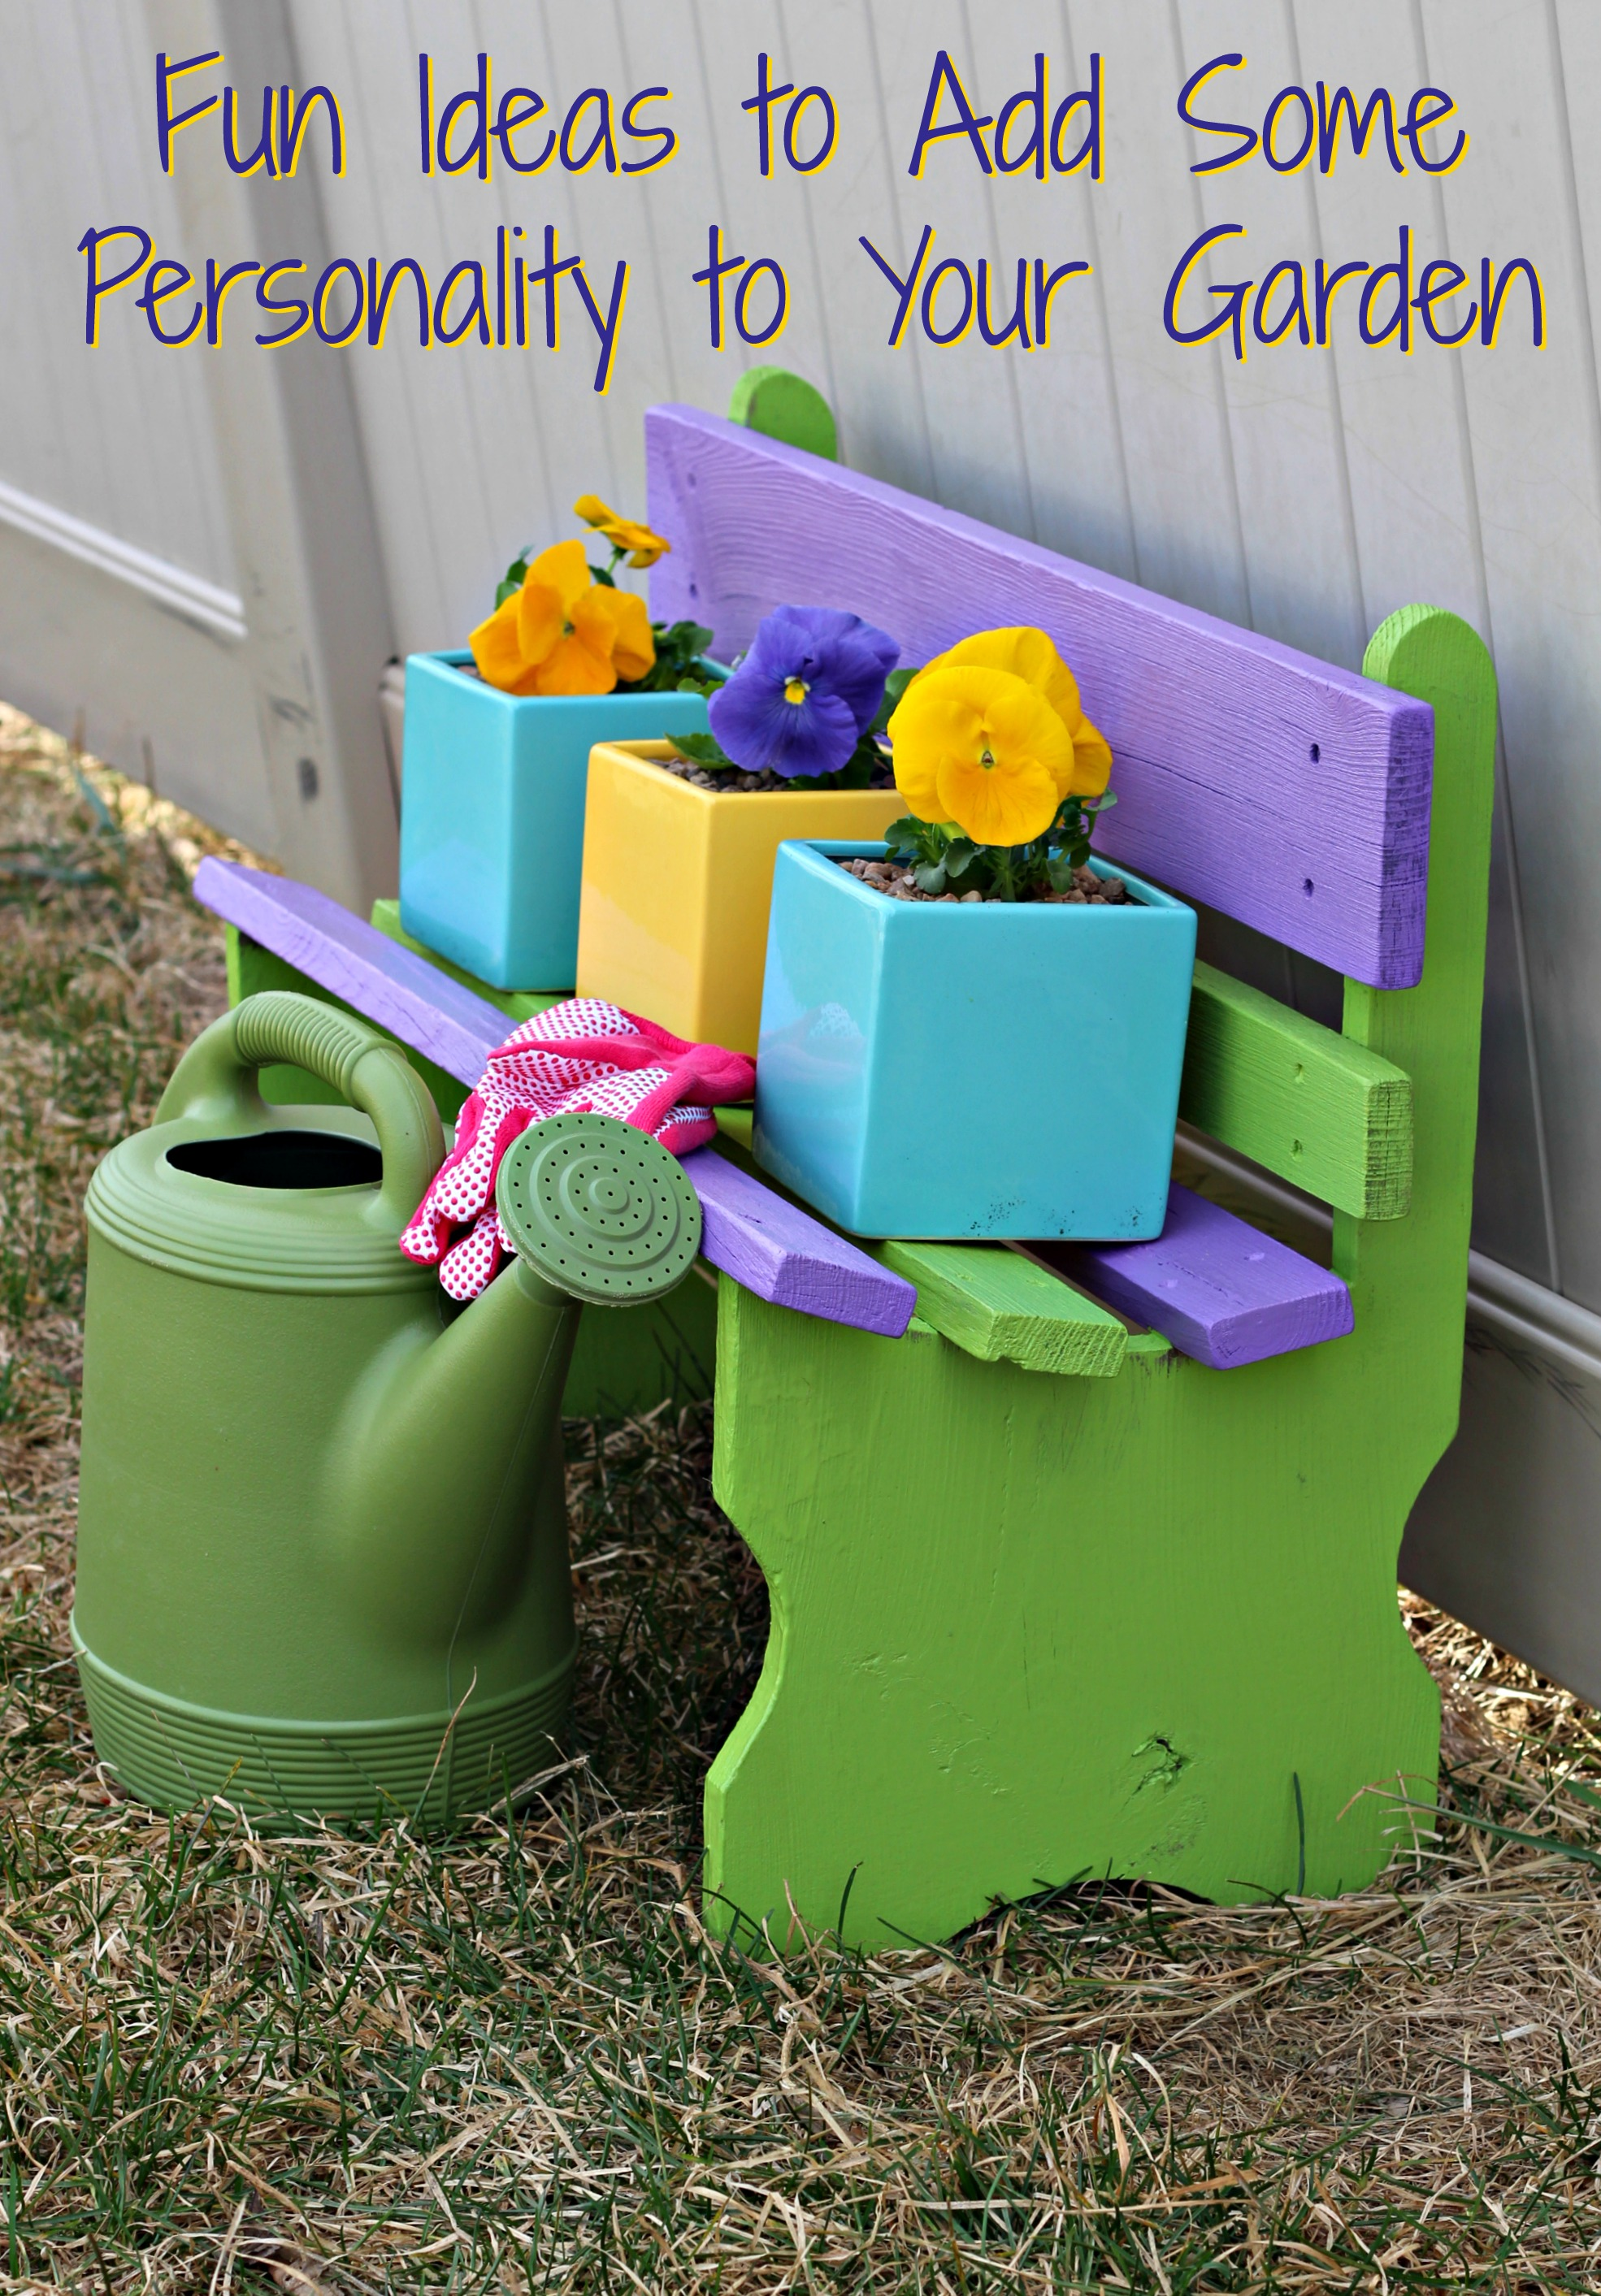 Fun Ideas To Add Some Personality To Your Garden   Living A Sunshine Life